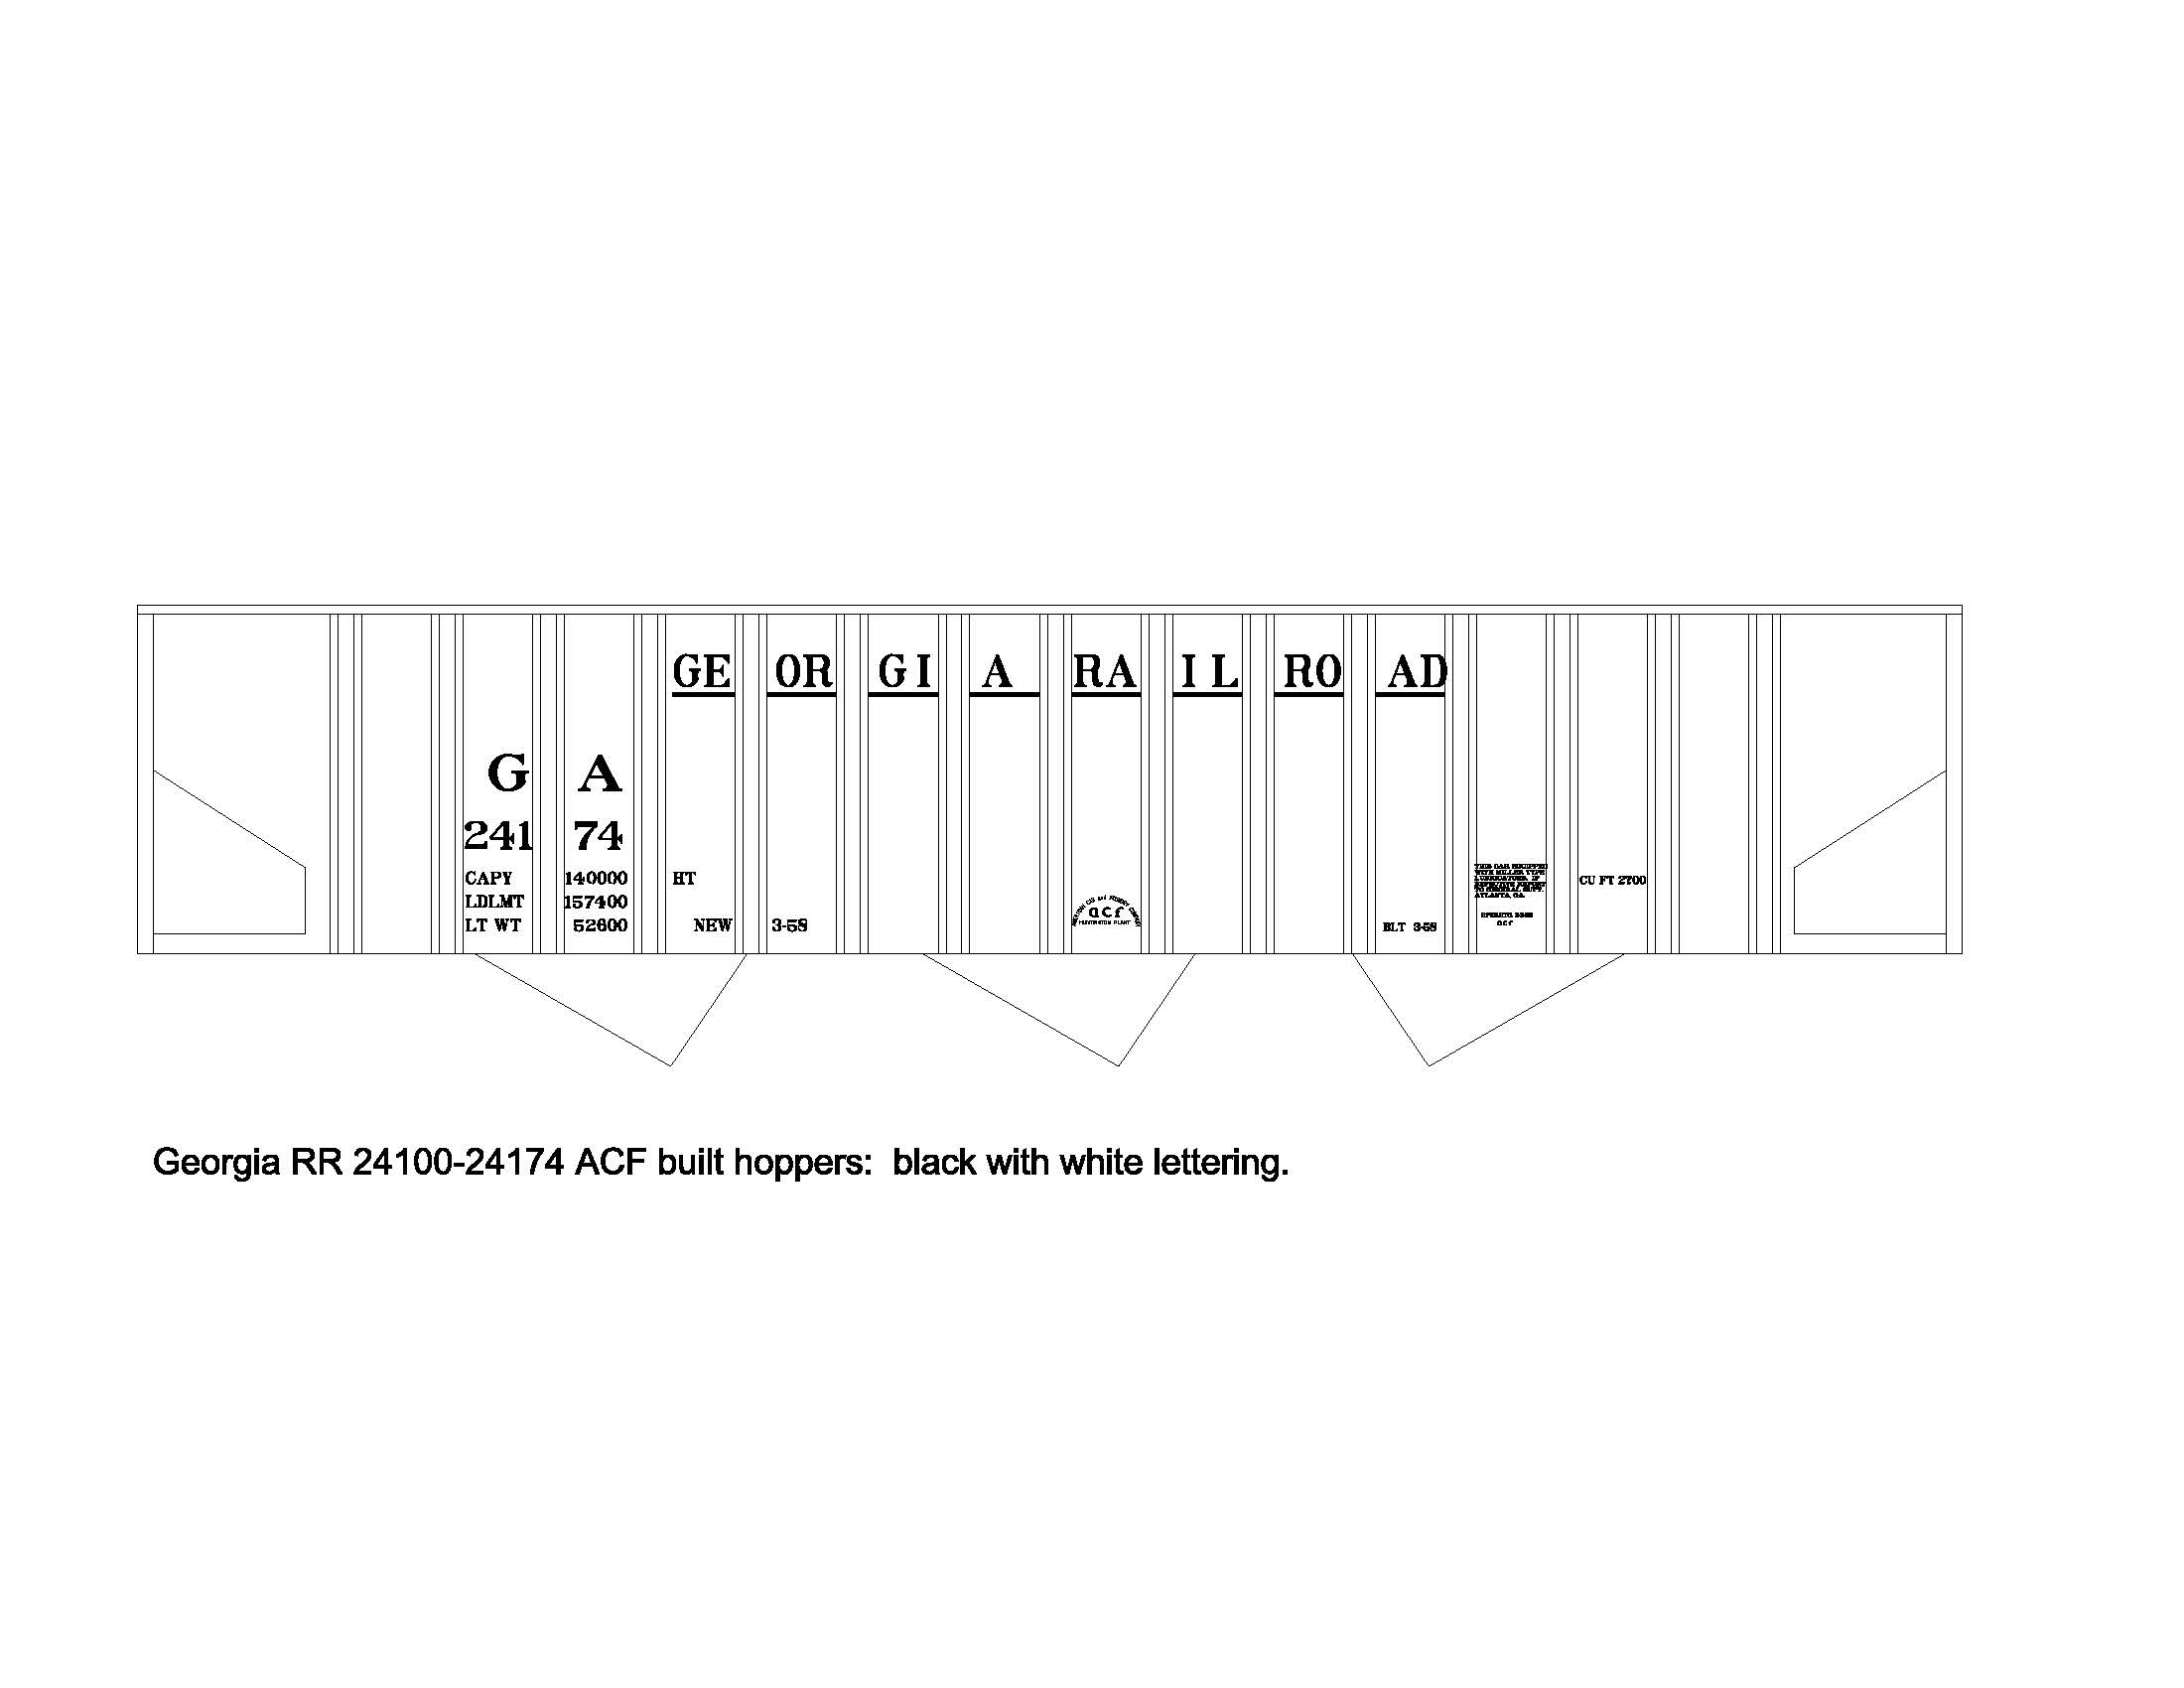 Curt Fortenberry Decals Playstation 3 Block Diagram Georgia Rr Bay Rib Side Hopper This New Set Is For The Acf 1958 Built Hoppers In Series 24100 24174 Black With White Lettering